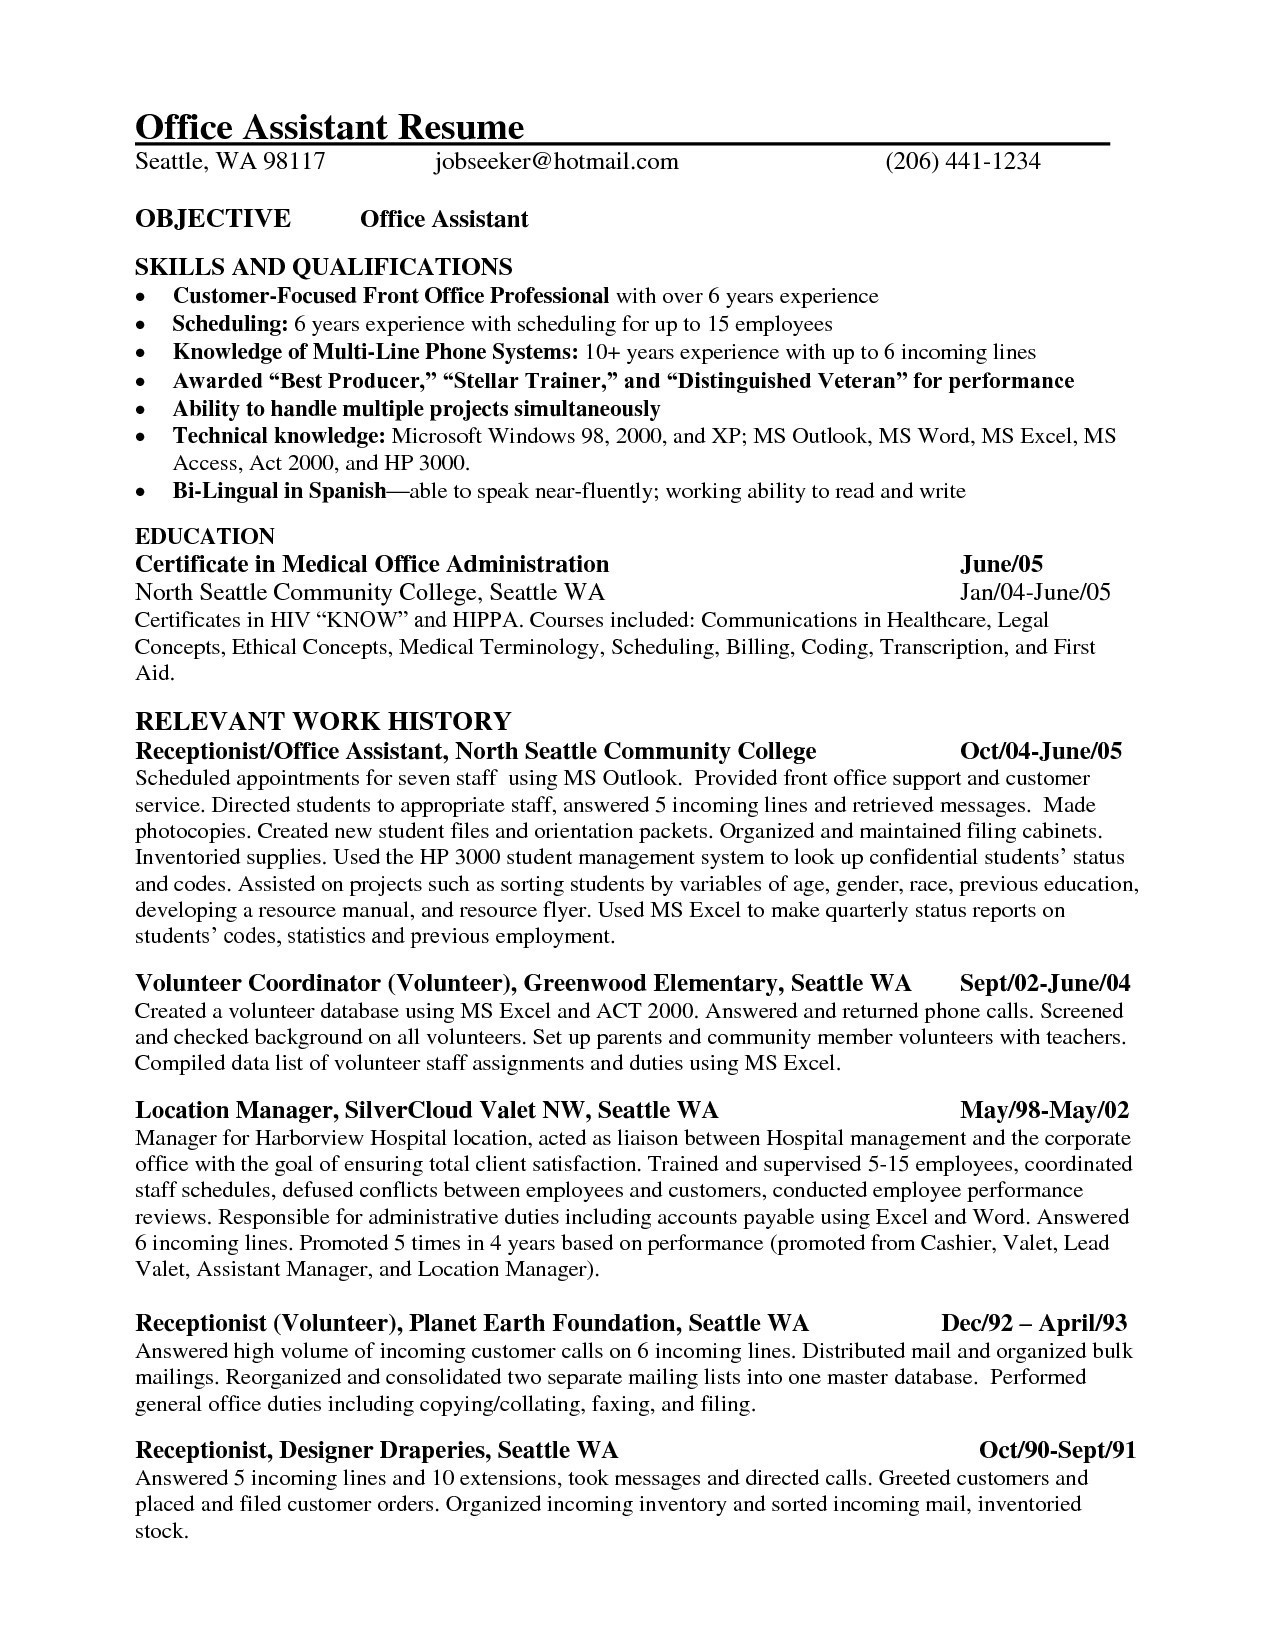 Medical Office Manager Resume Example - Medical Fice Manager Resume Examples New Fice Manager Job